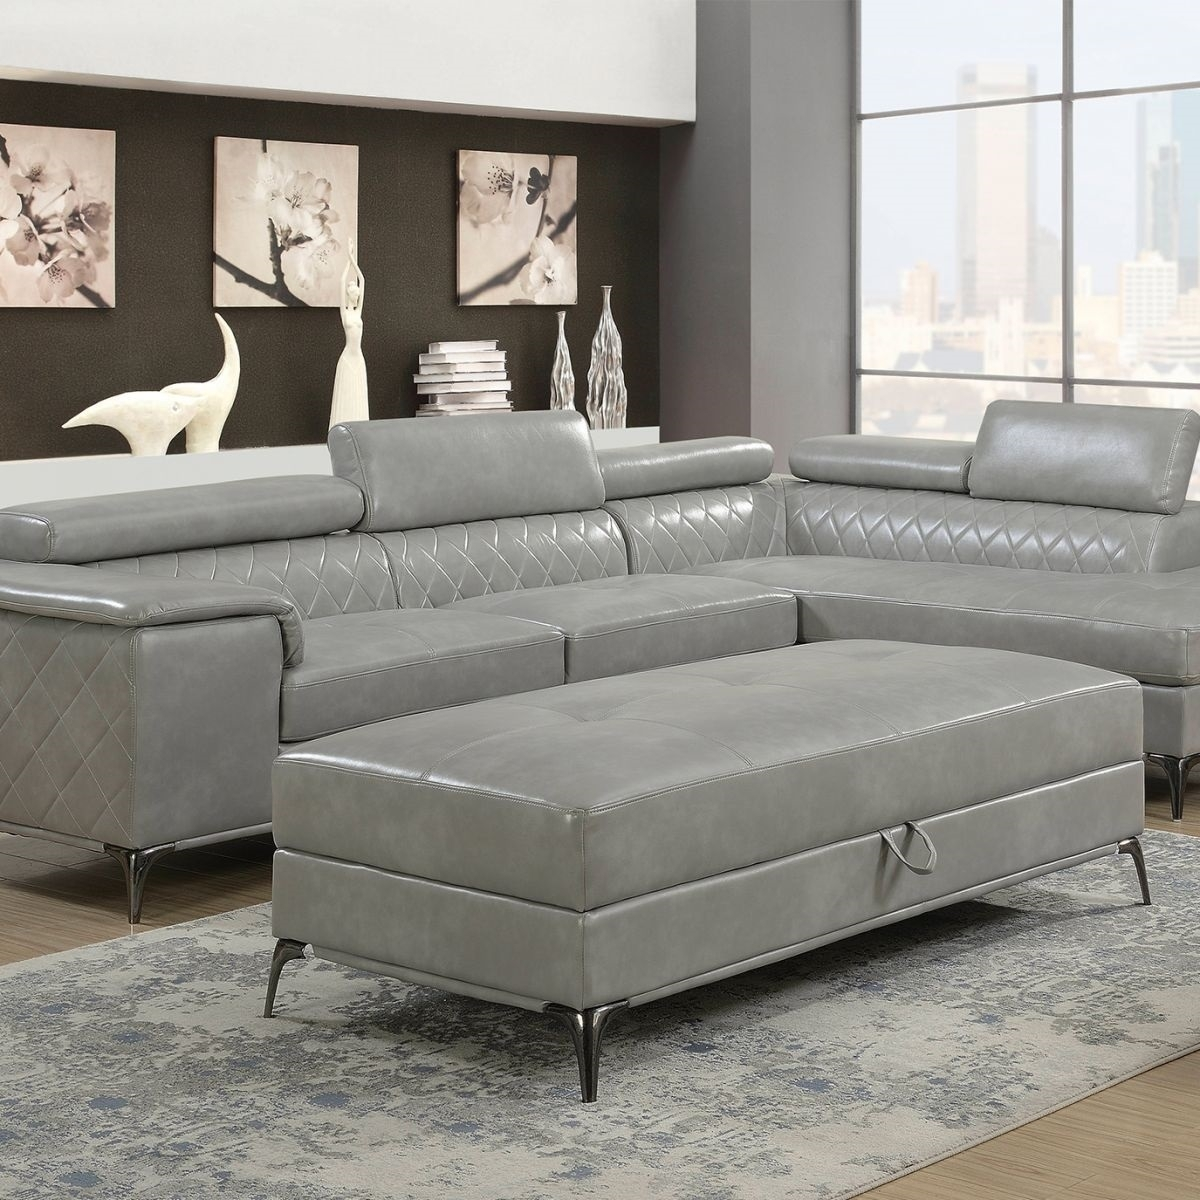 Worthington Grey 2 Pc Sectional & Ottoman | Badcock & More within Cosmos Grey 2 Piece Sectionals With Raf Chaise (Image 30 of 30)